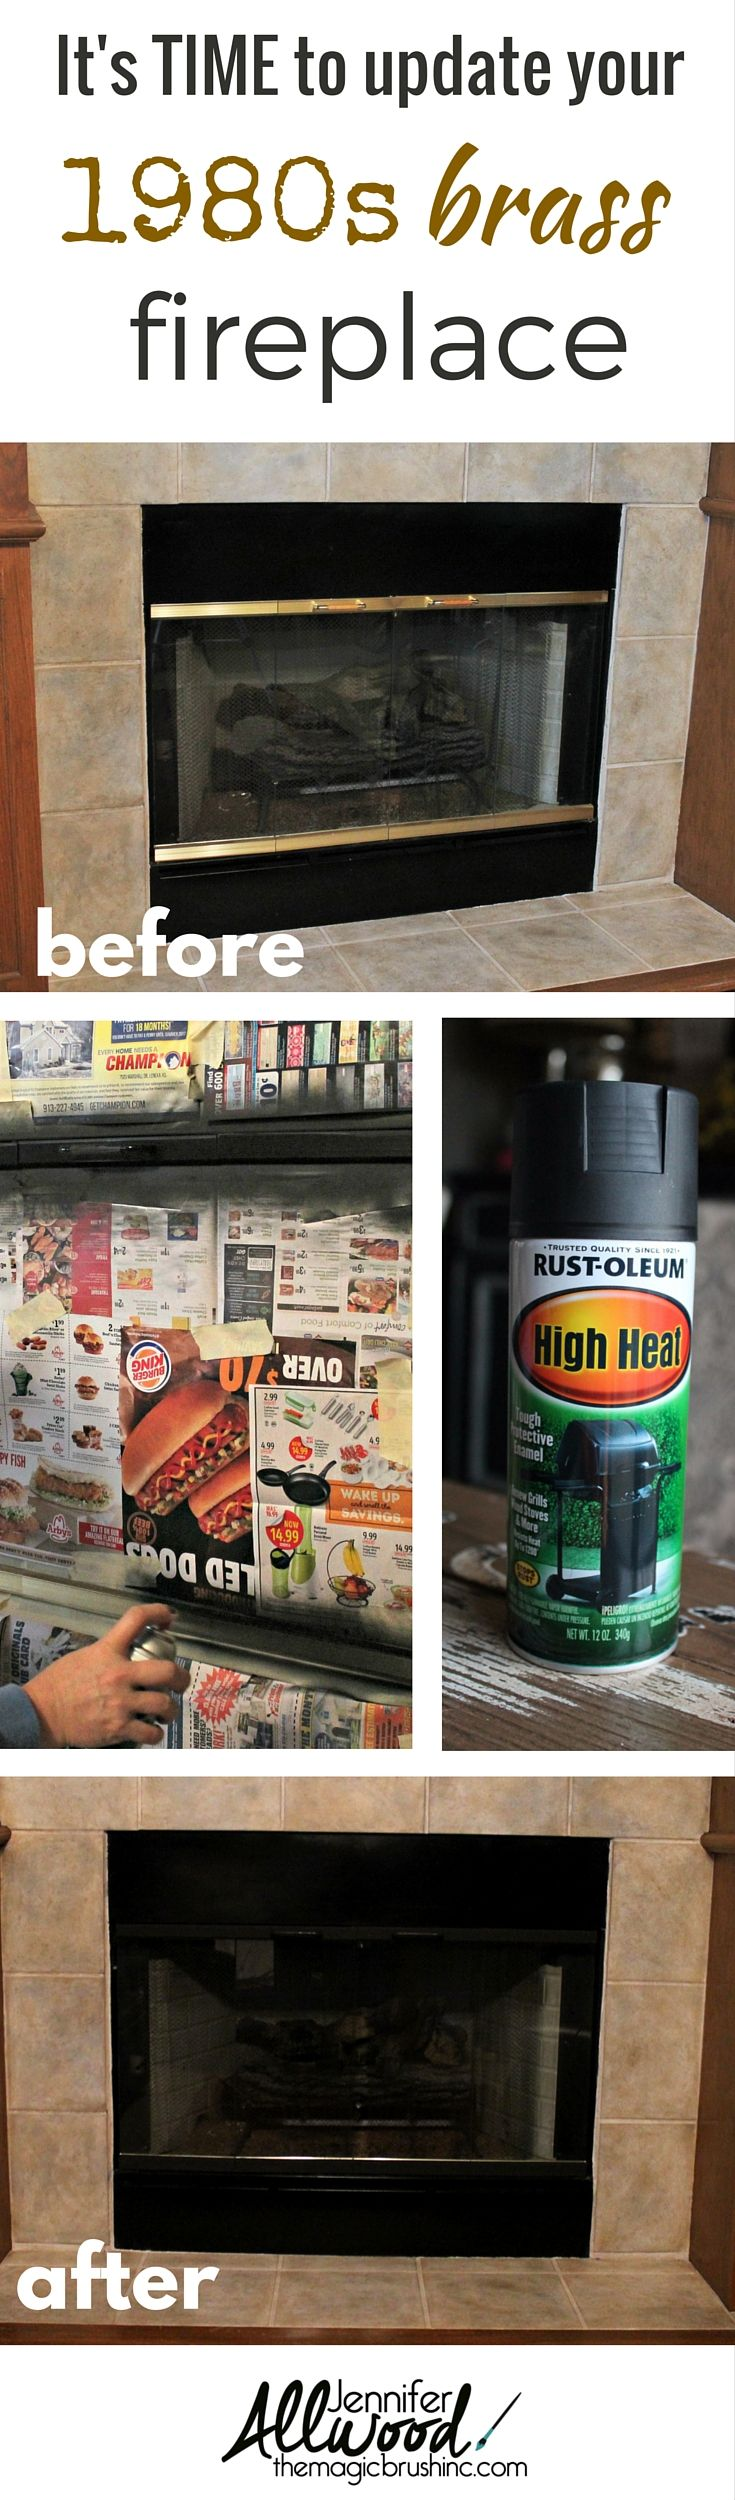 Ideas : It's time to update your 1980s brass fireplace surround! It's an easy spray paint project and one of the best home updates with a huge impact in your living room! More painting tips, DIY projects and decorating advice at theMagicBrushinc.com